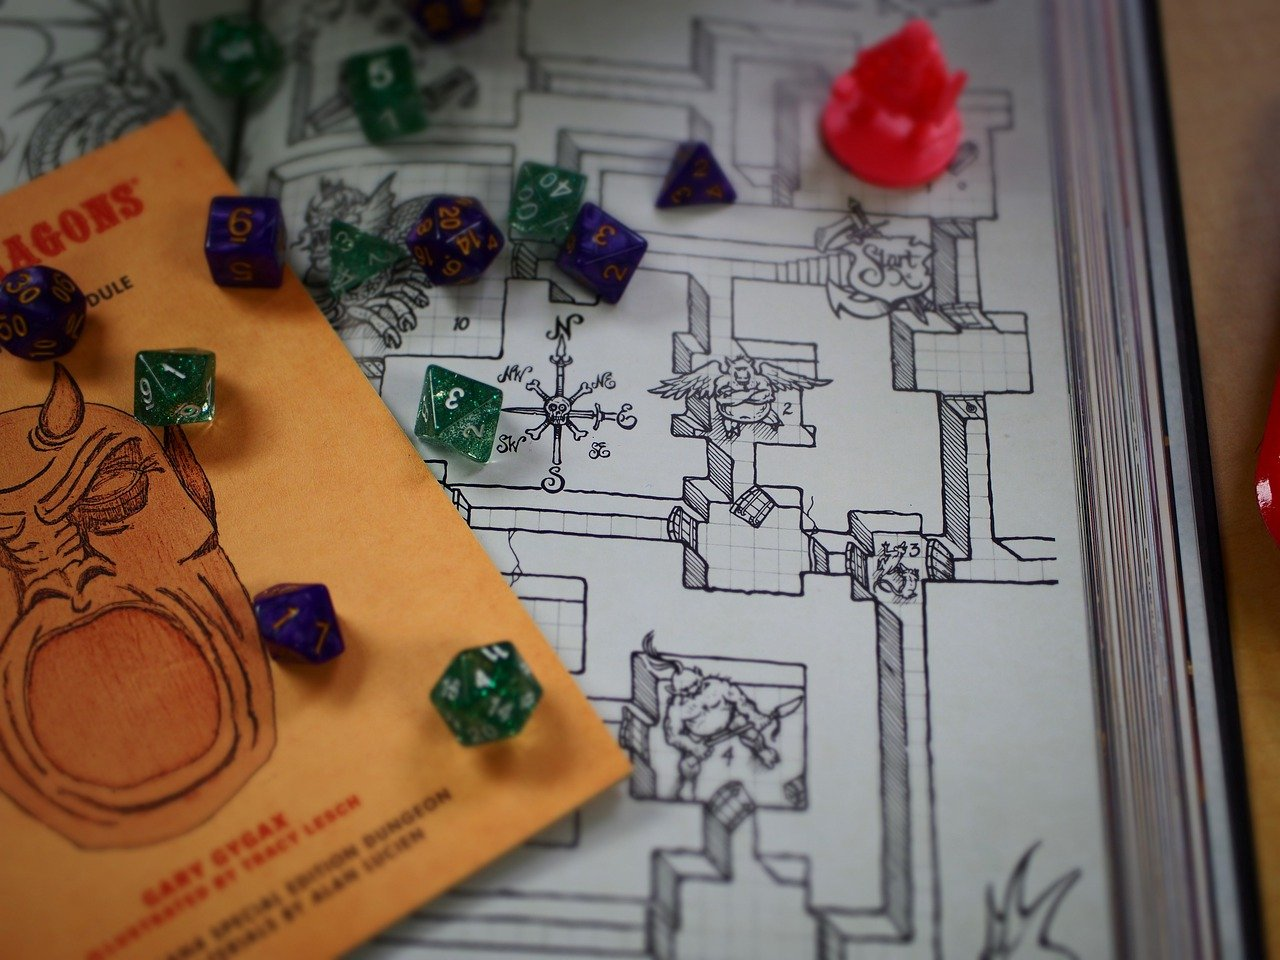 AI Trained To Be A Dungeon Master And Generate Plots For Dungeons And Dragons